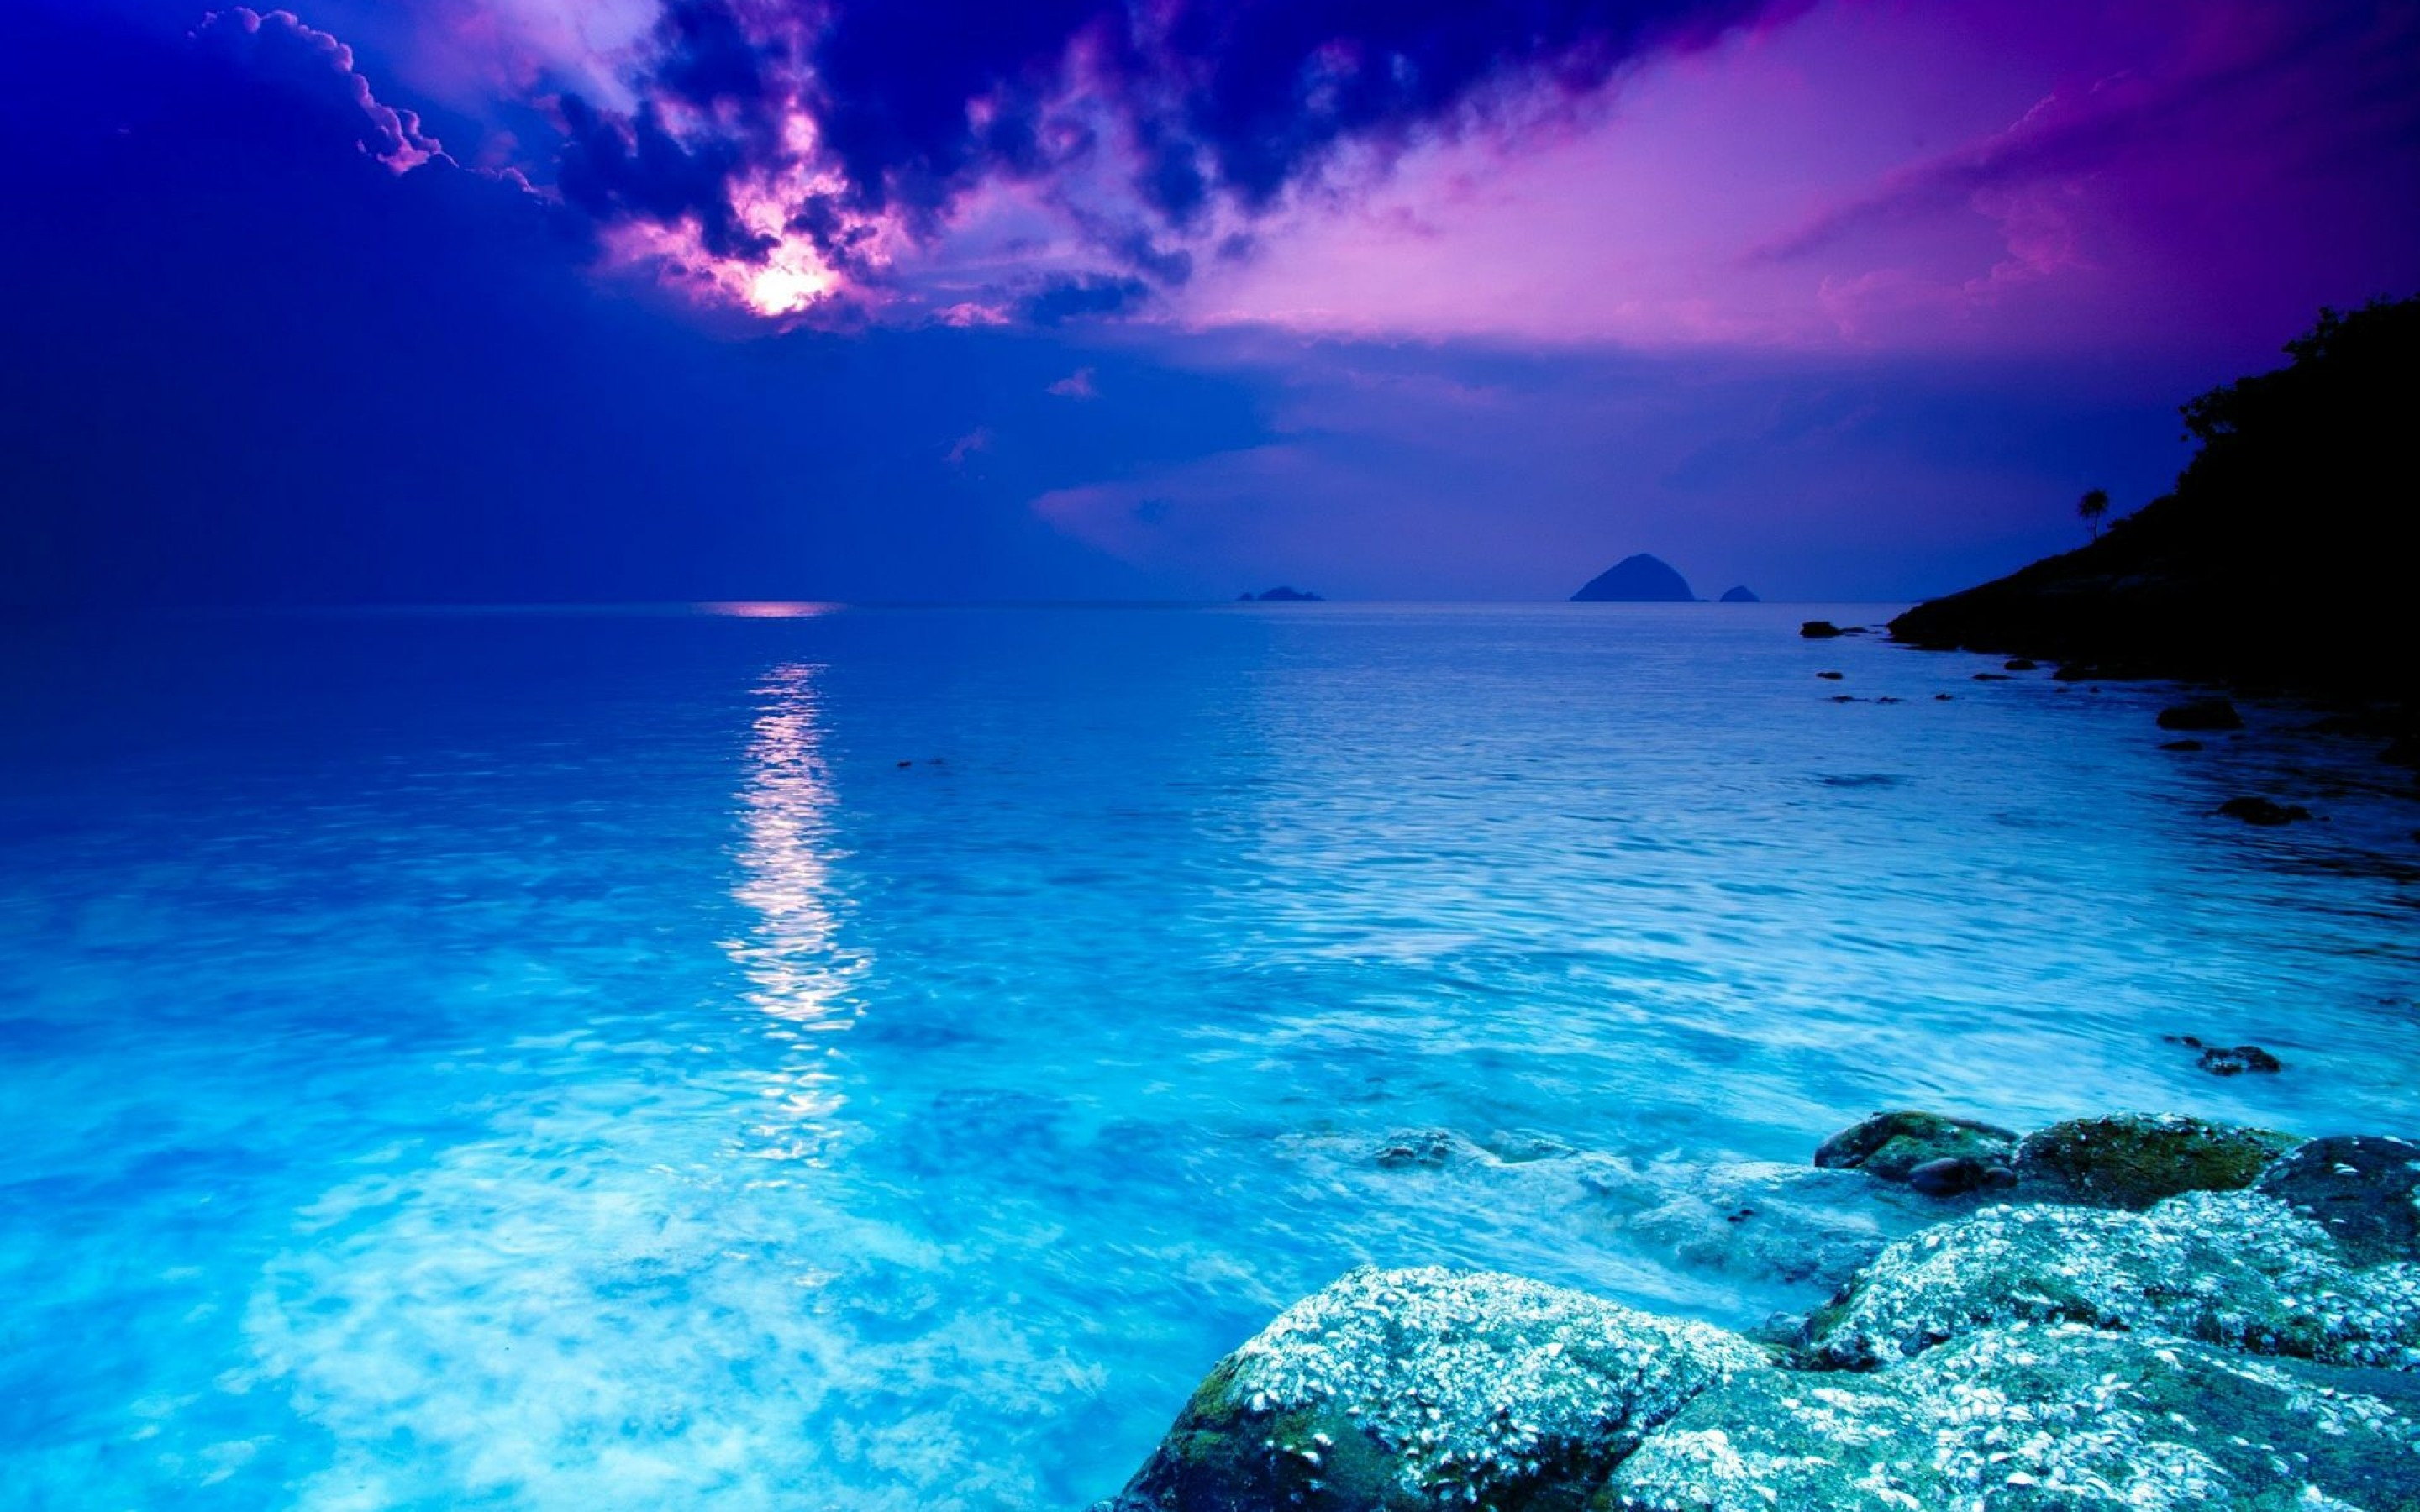 Sea desktop backgrounds wallpaper high definition high - Ocean pictures for desktop background ...